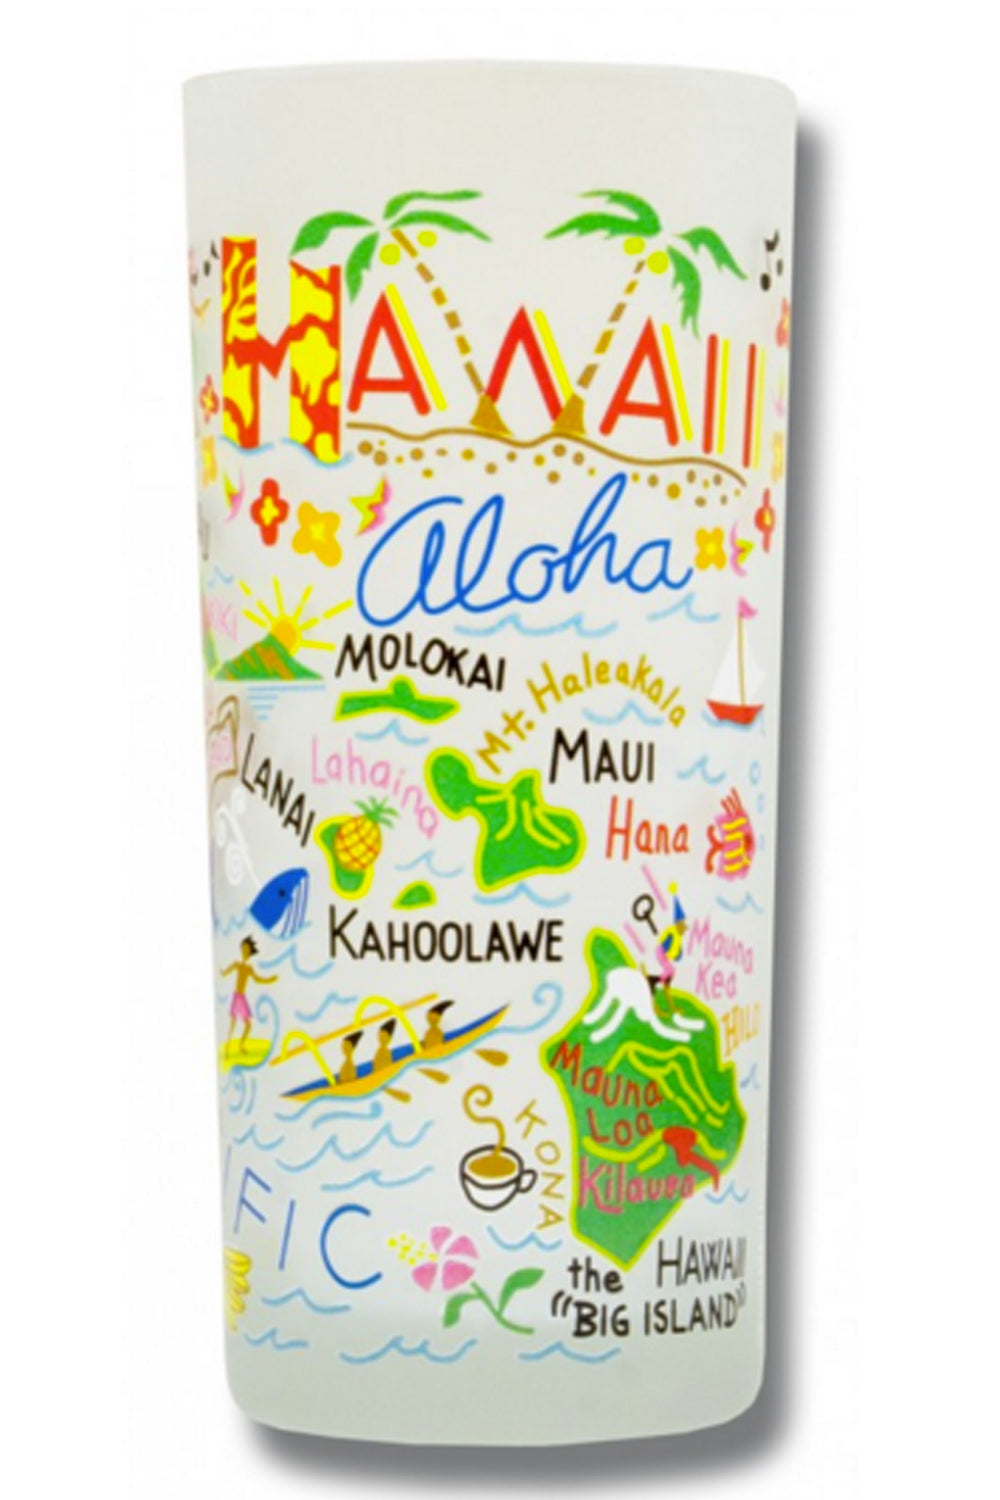 CS Frosted Glass Tumbler Cup - Hawaii